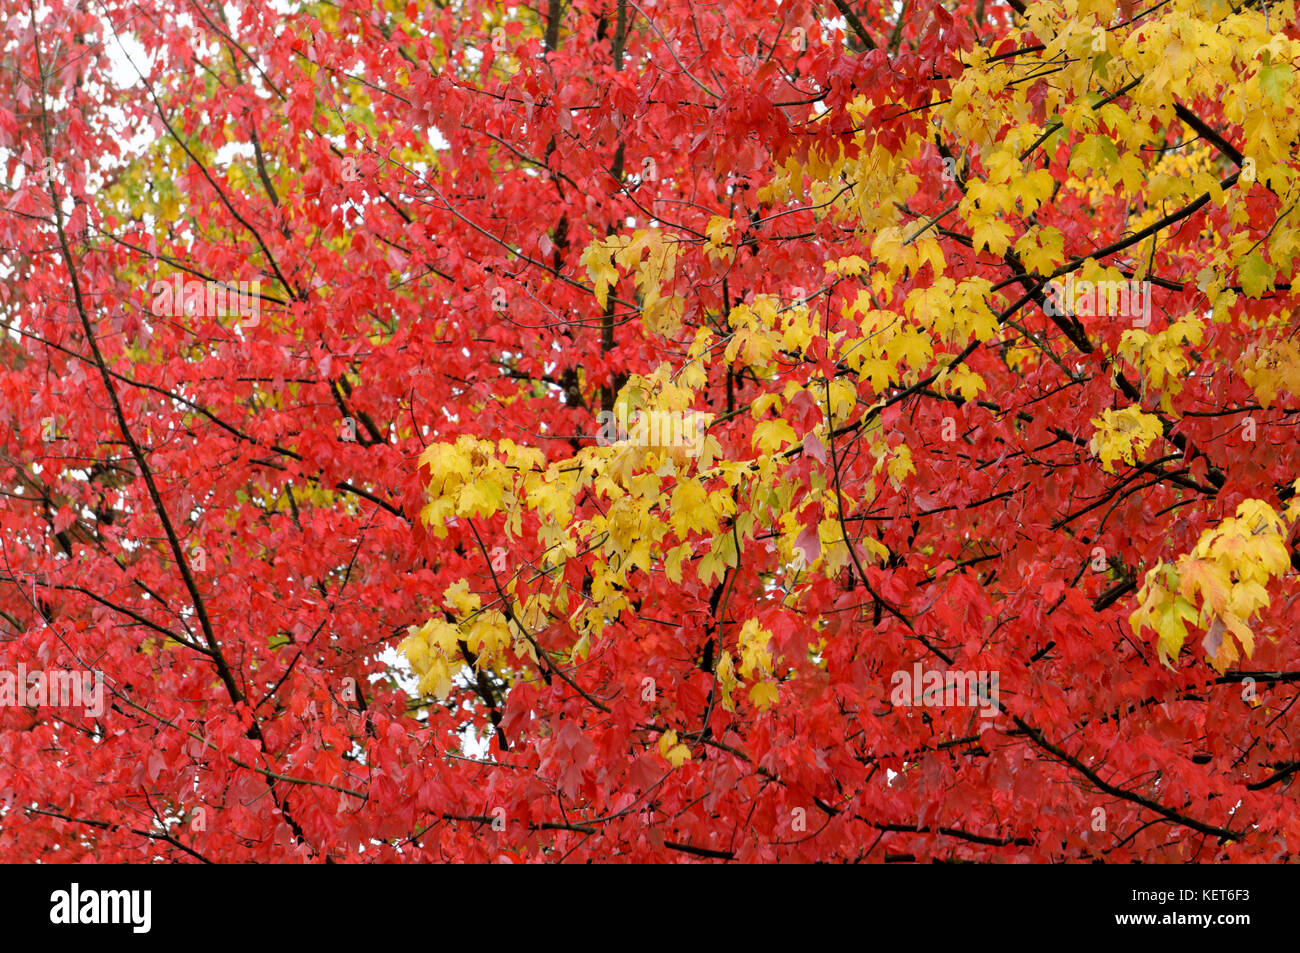 red-and-yellow-fall-foliage-of-maple-tre